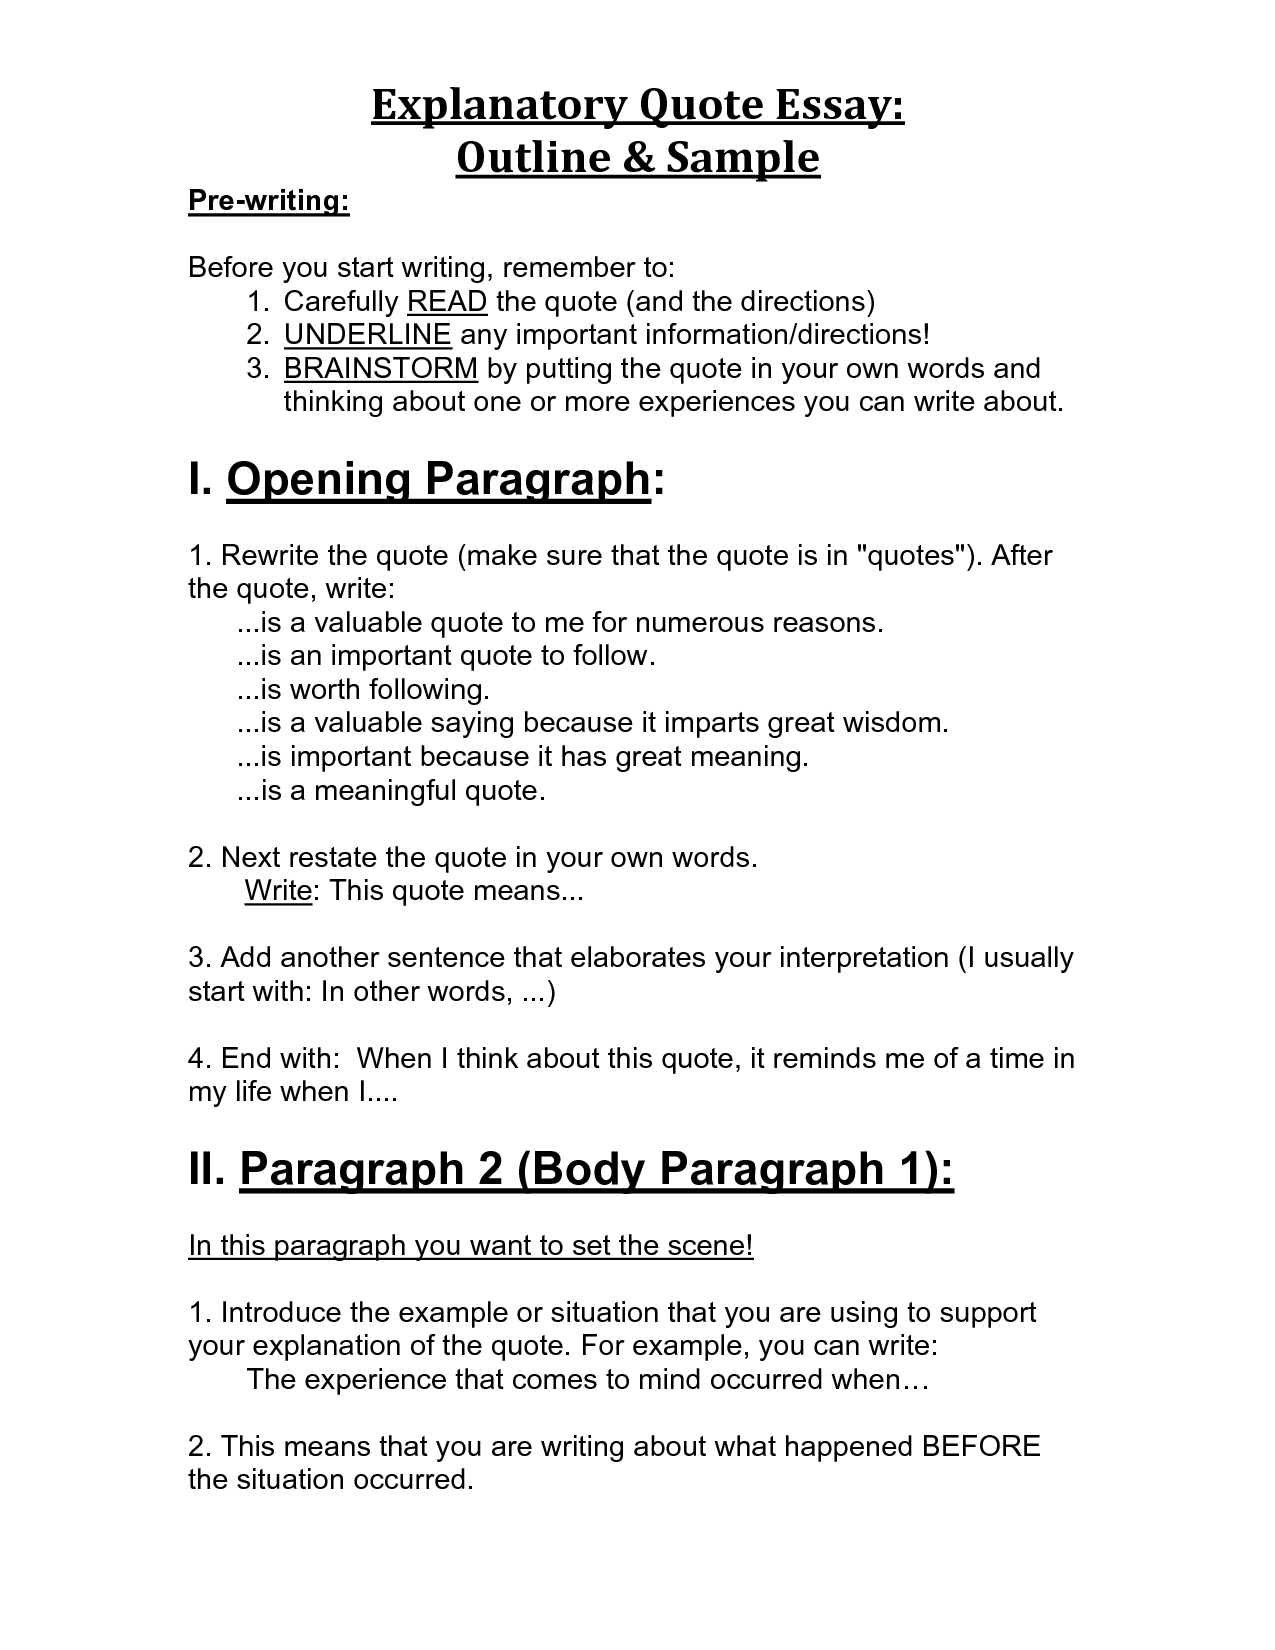 007 Explanation Essay Expository Format High School Common Core Explanatory Of Informativeexplanatory Quote Outlines Examples Informative For Middle Example How To Write Singular An Introduction Full